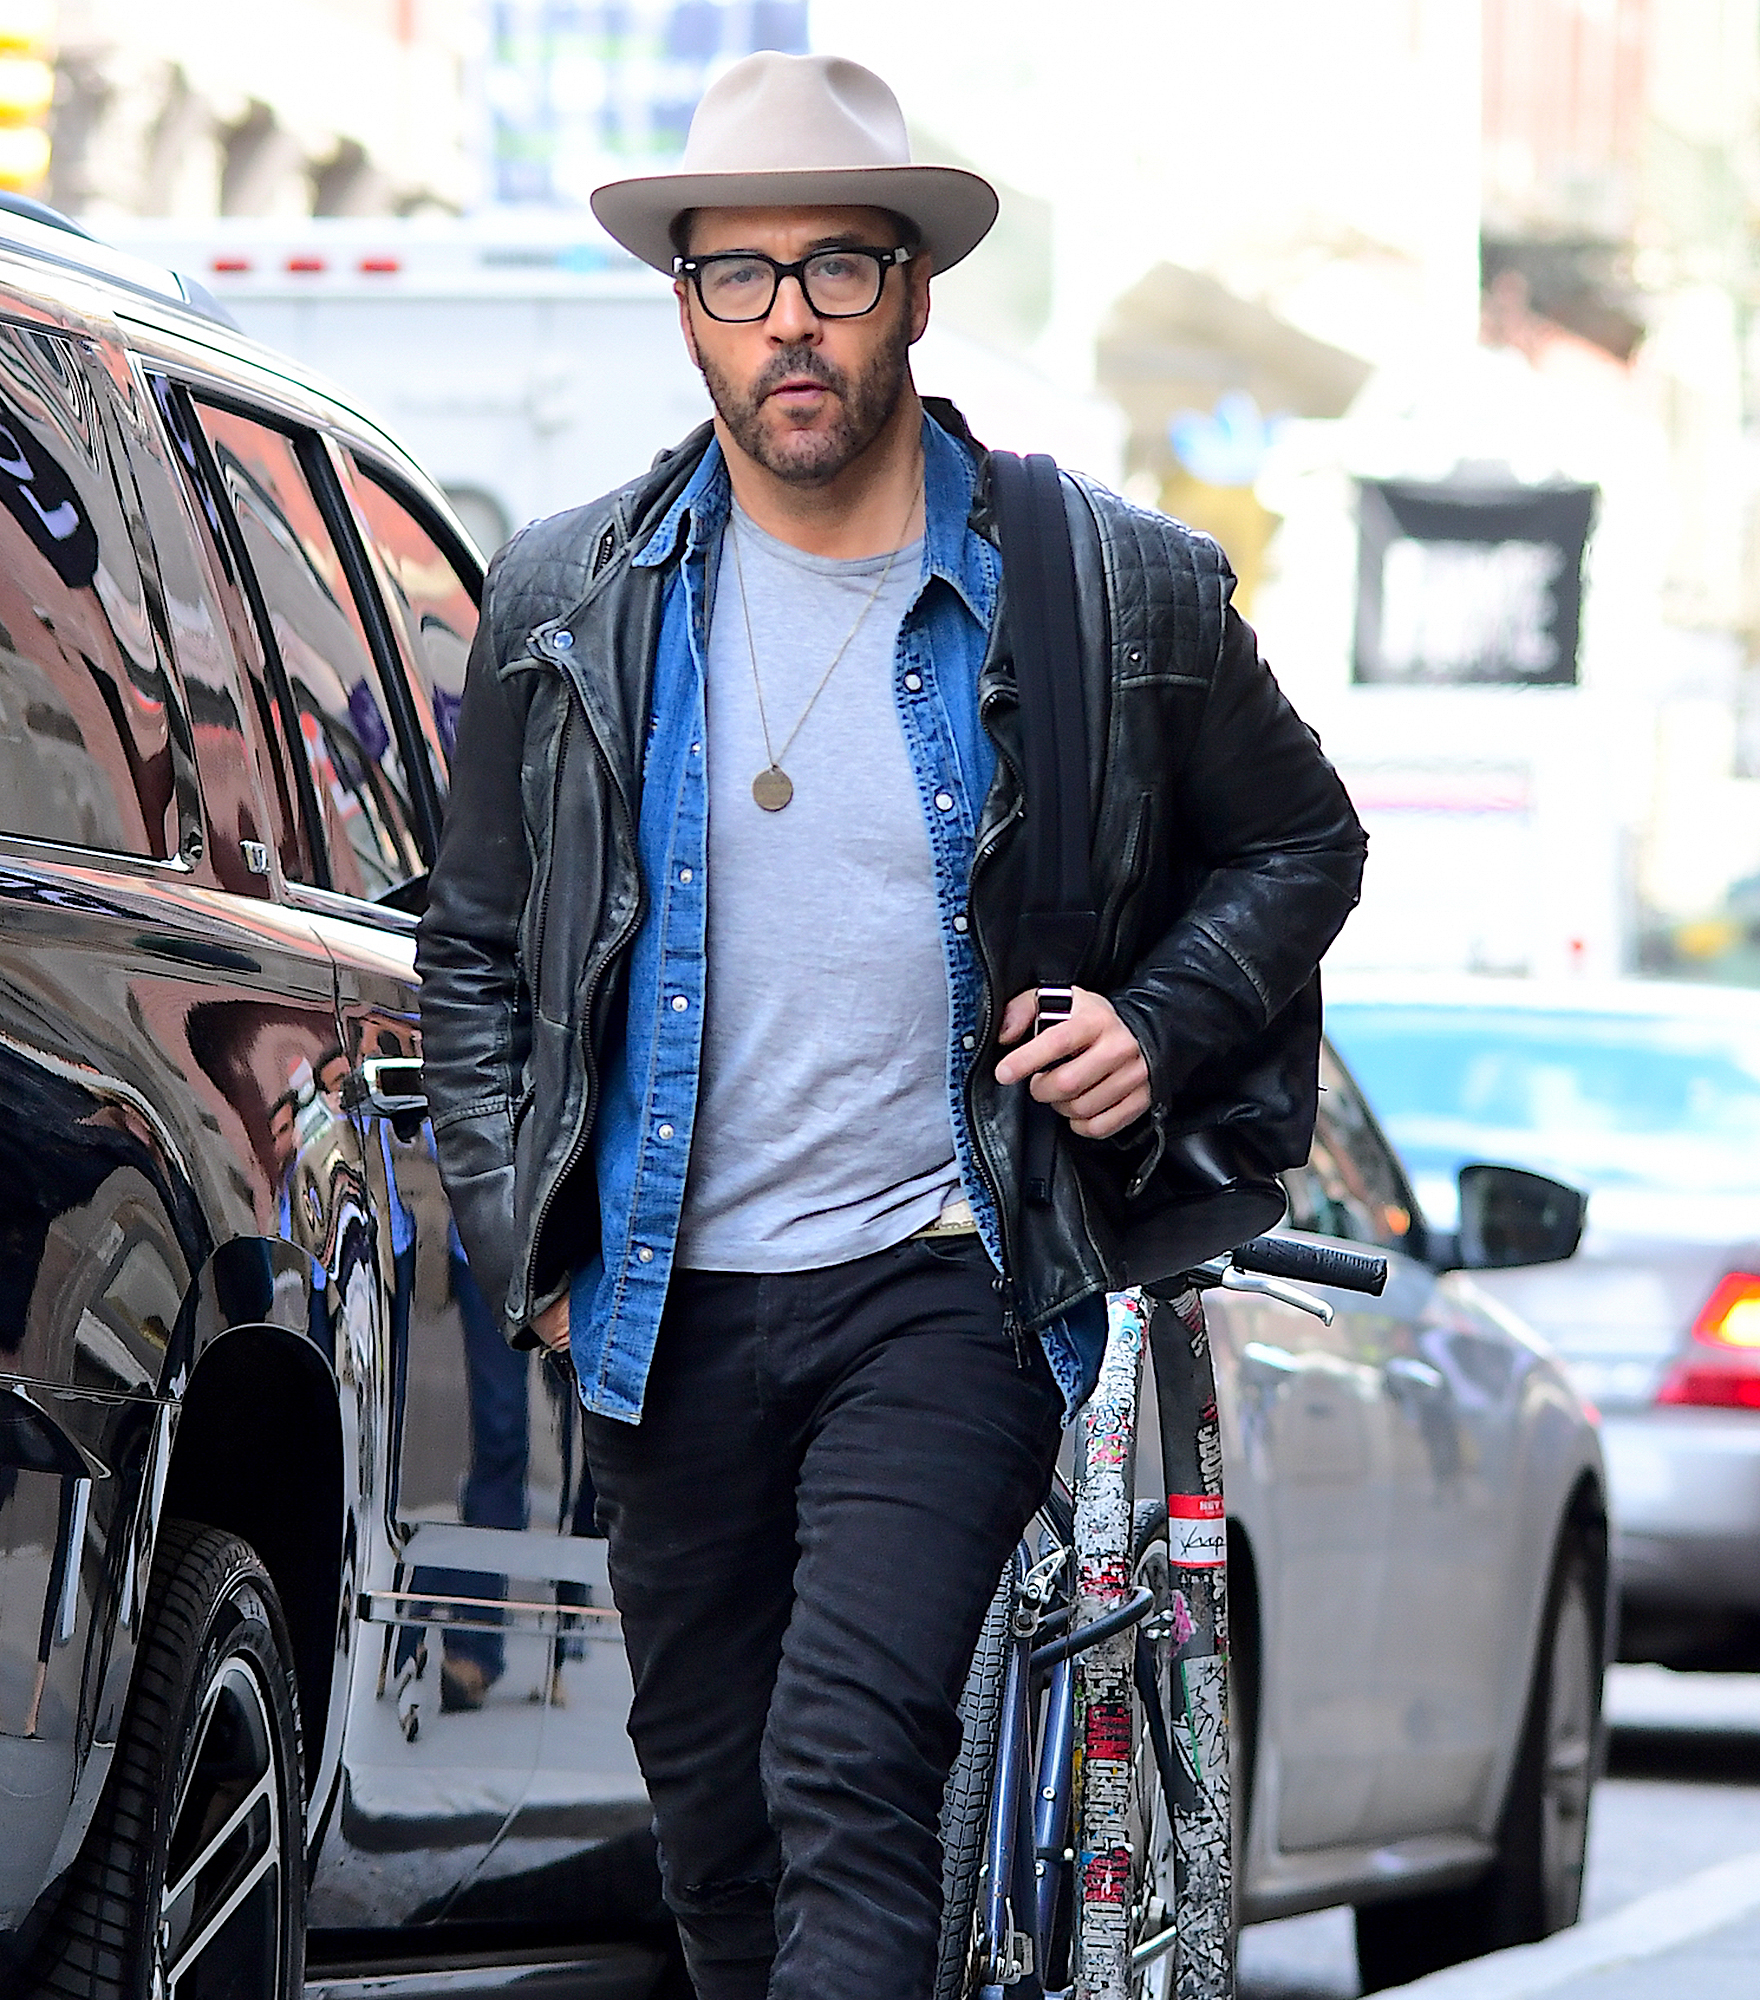 EXCLUSIVE: Jeremy Piven Spotted Shopping in Soho NYC wearing a Fedora and Leather Jacket